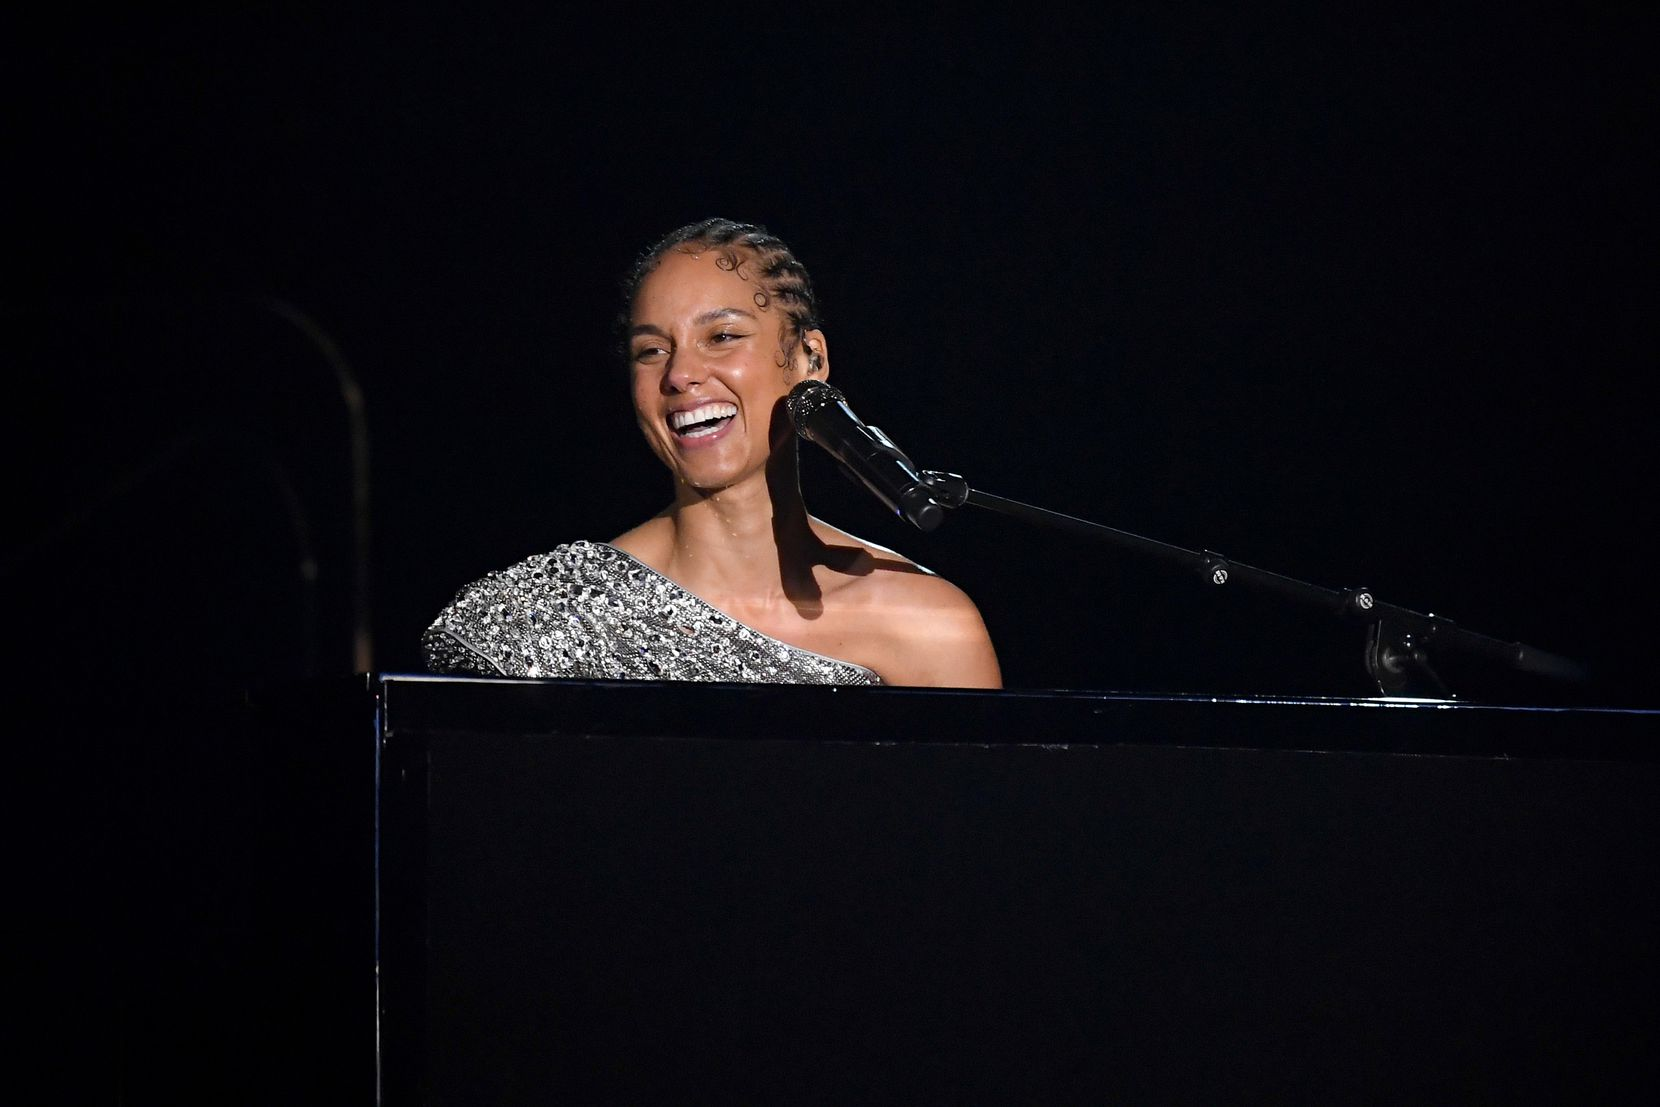 Alicia Keys performed onstage during the 62nd annual Grammy Awards on Jan. 26 at the Staples Center in Los Angeles.